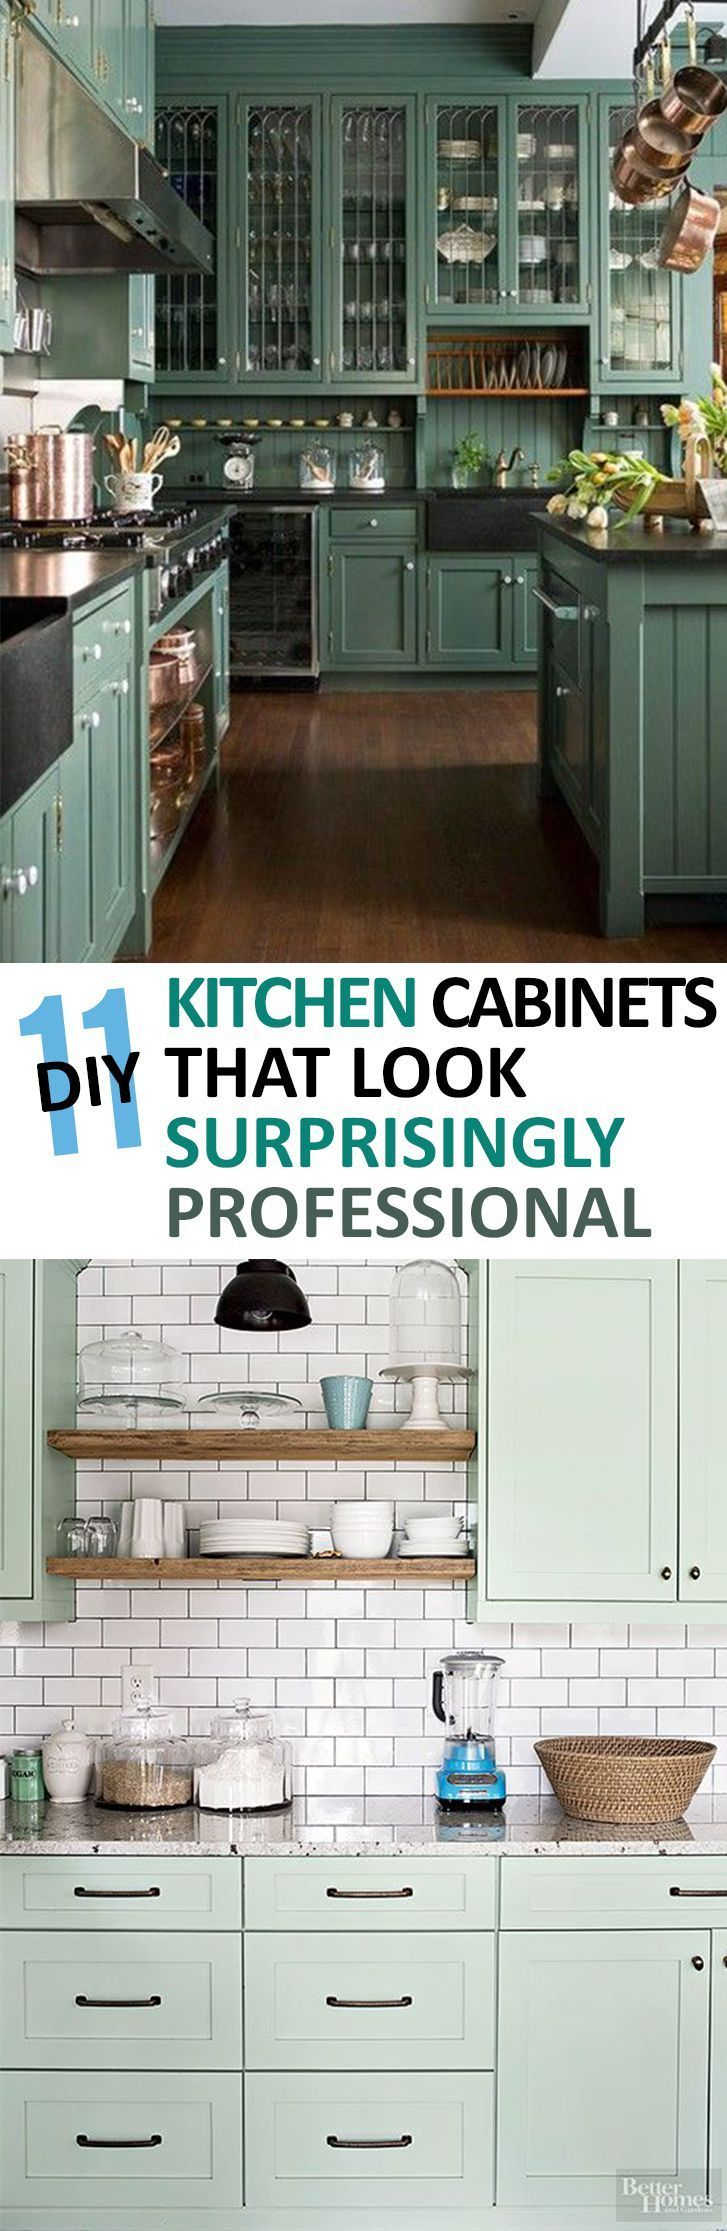 11 DIY Kitchen Cabinets that Look Surprisingly Professional ...